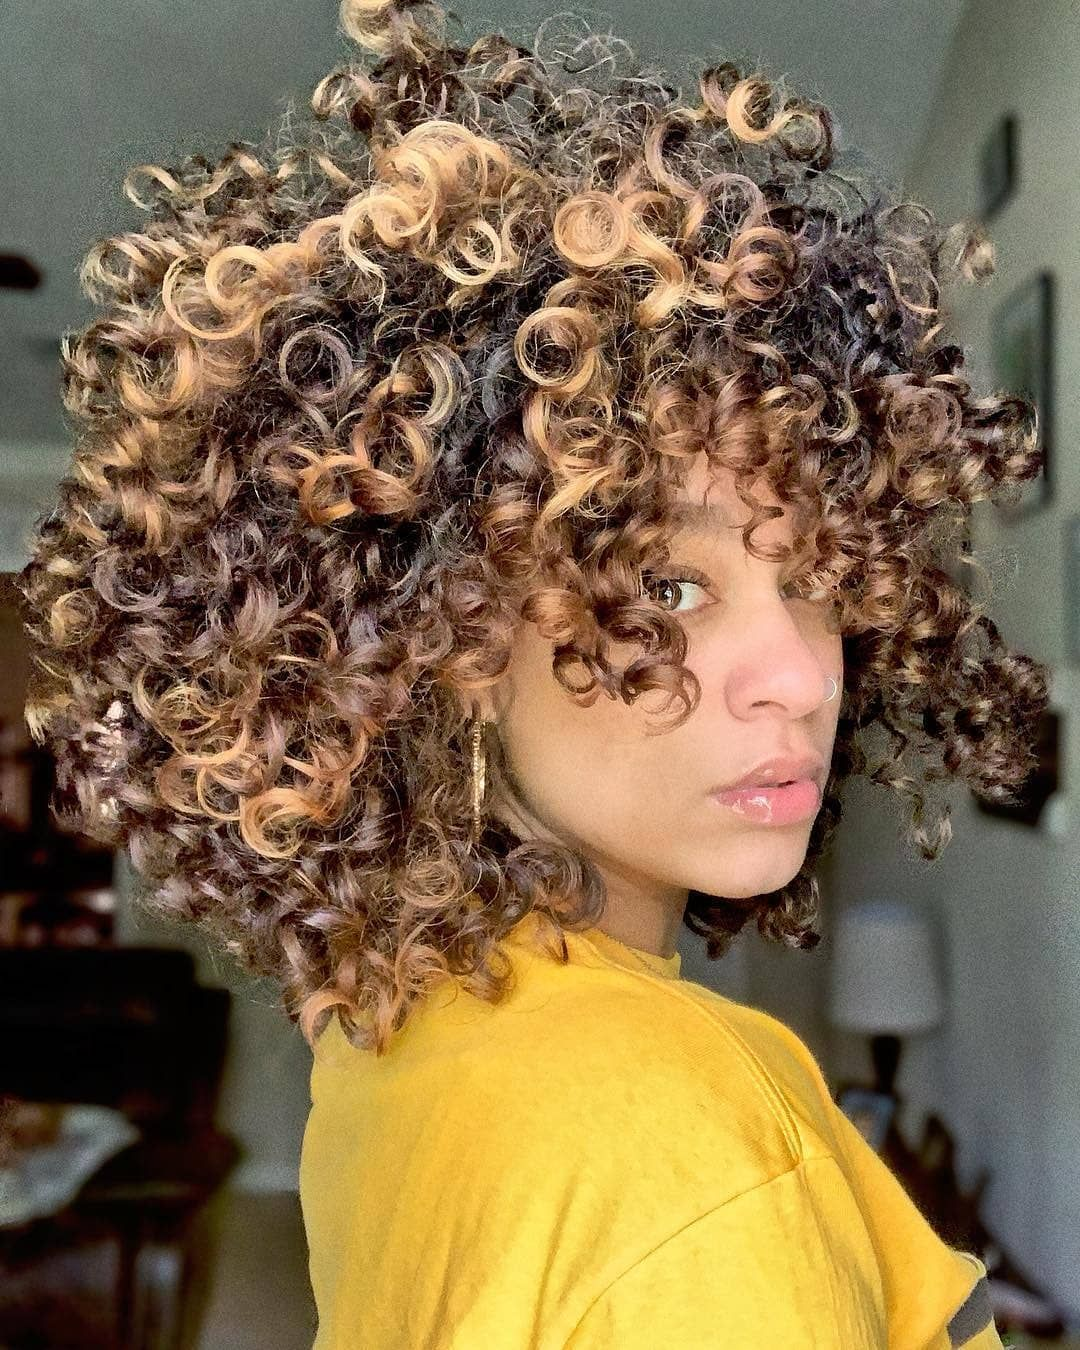 Linet K S Tips On Curly Hair On Popsugar Balayagabylinet Highlights Curly Hair Natural Curls Hairstyles Black Hair Curls